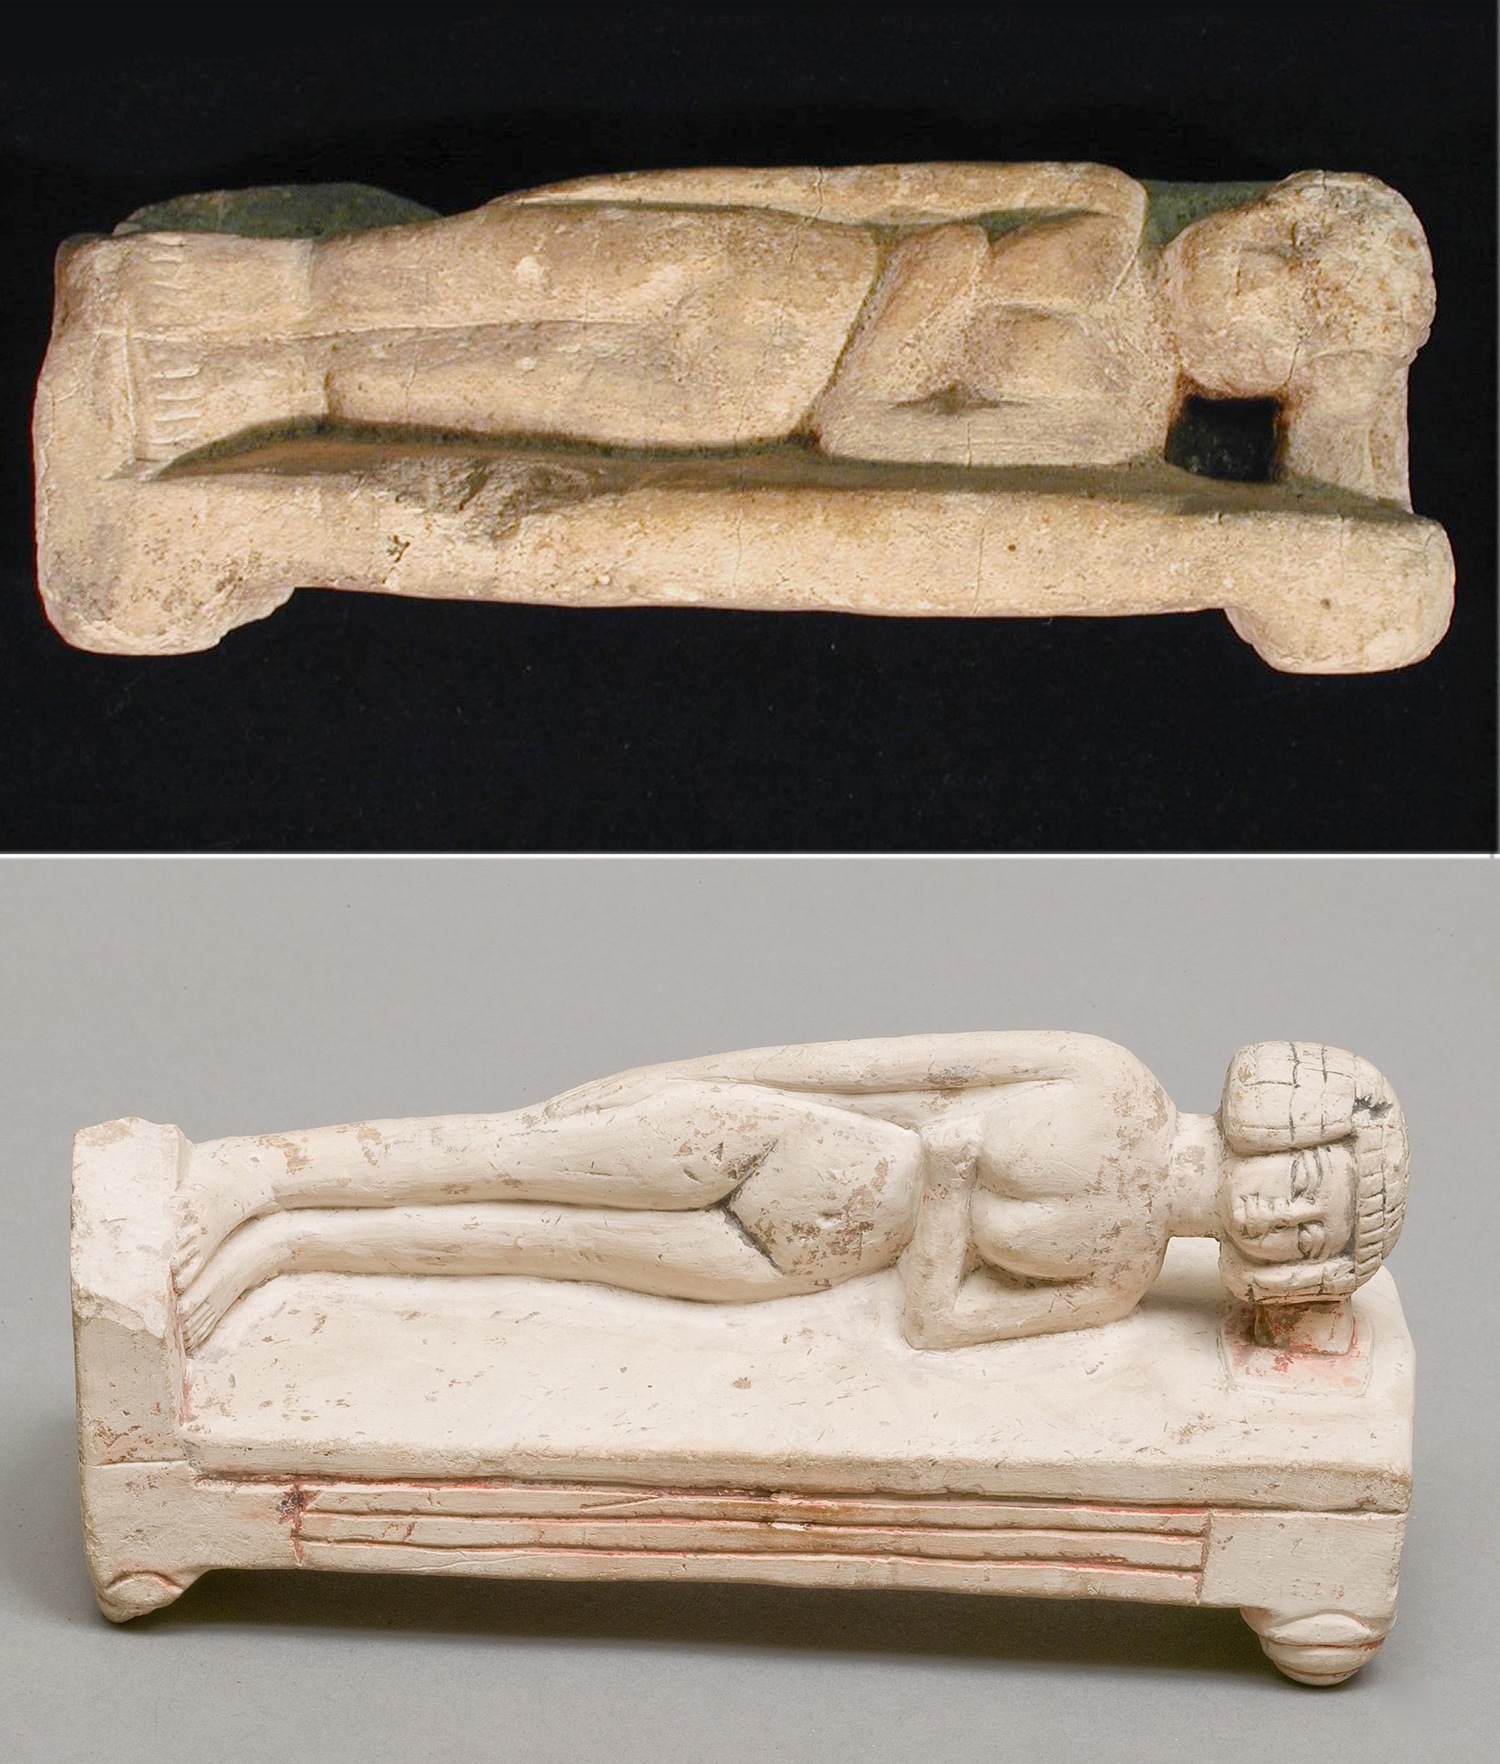 Figure 17:Similar limestone figures in the collection of Penn Museum (top, UPMAA 29-75-429) and the Metropolitan Museum of Art in New York (Rogers Fund, 1915, 15.2.8). Images courtesy of The University of Pennsylvania Museum of Archaeology and Anthropology and the Metropolitan Museum of Art, NYC. Note that the Egyptian bed did not have a headboard, but rather a footboard at the end of the bed.